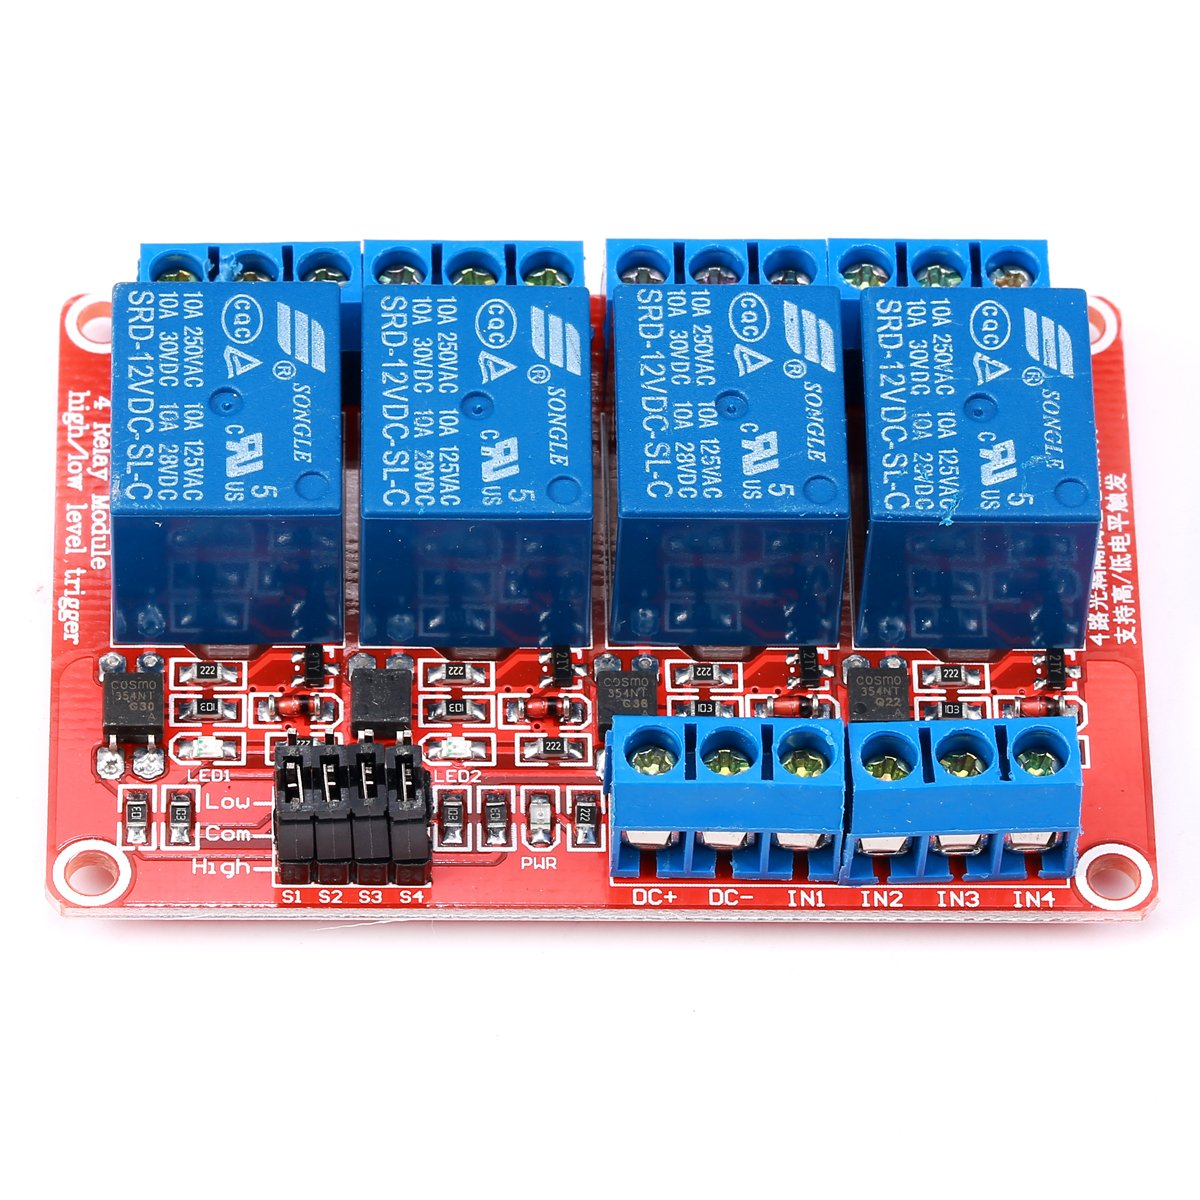 Geree 4 Channel Relay Module Dc 12v With Optocoupler H L Current Balance Level Triger For Arduino Home Audio Theater